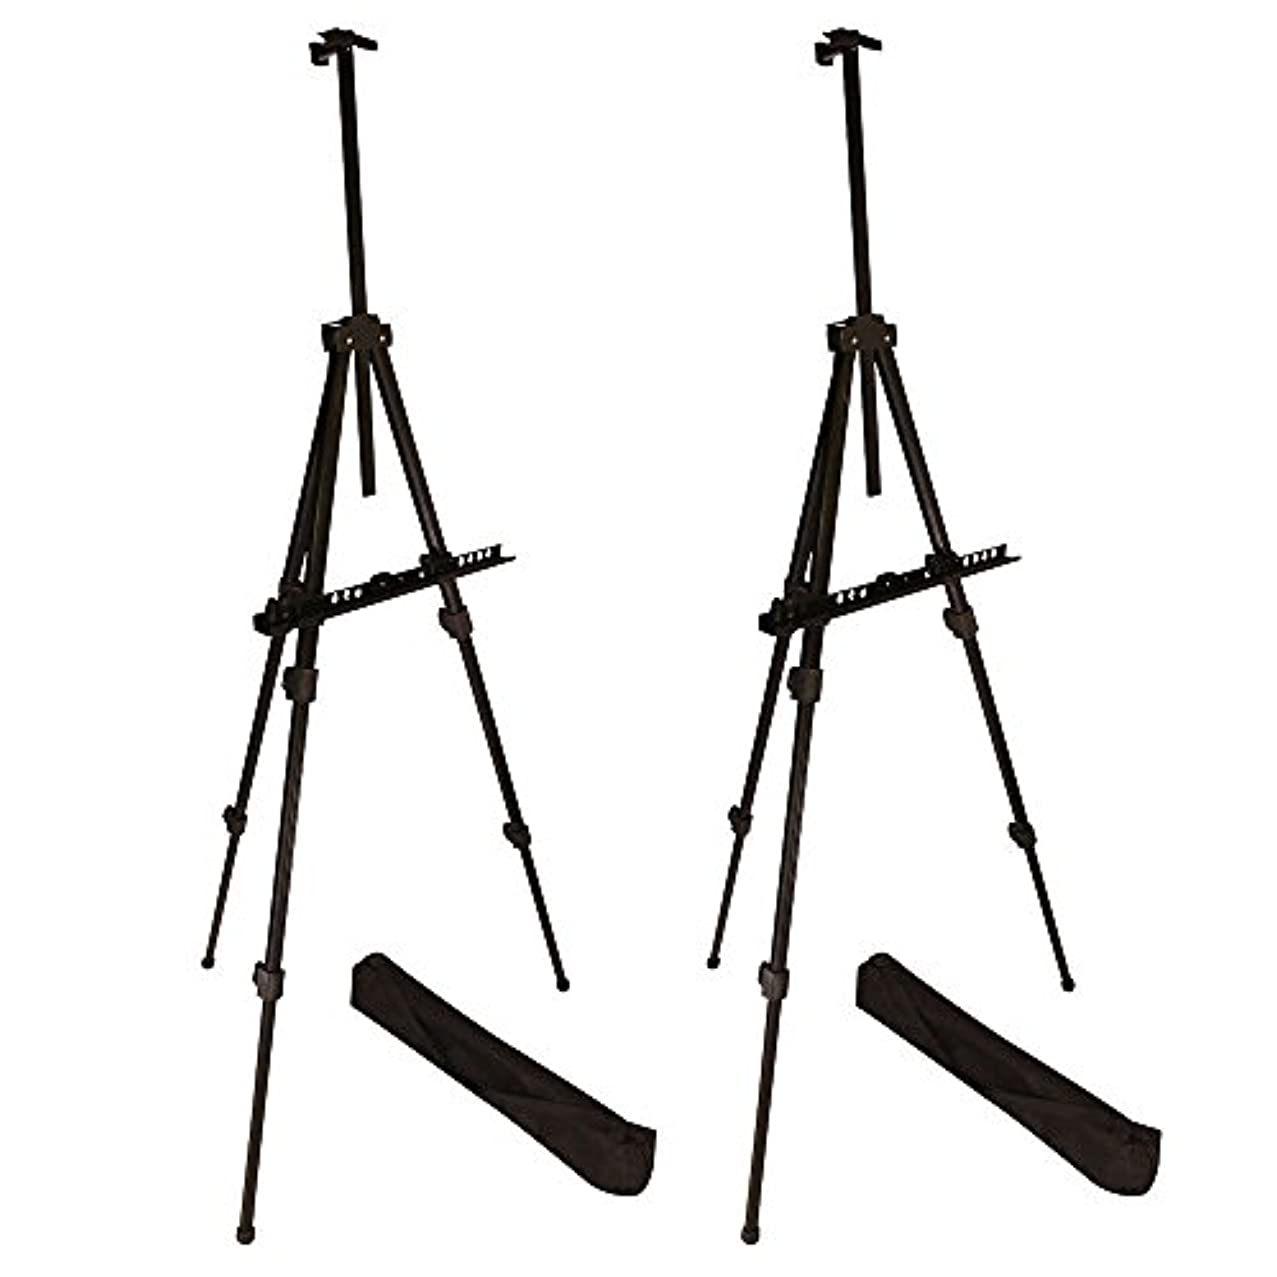 """Berland Artist Easel, Black Aluminum Metal Display Easel Stand with Bag for Floor/Table-Top/Flip Charts, Portable Field Art Easels w/Adjustable Height 22-71"""" for Posters, Kids Painting (2-Pack)"""